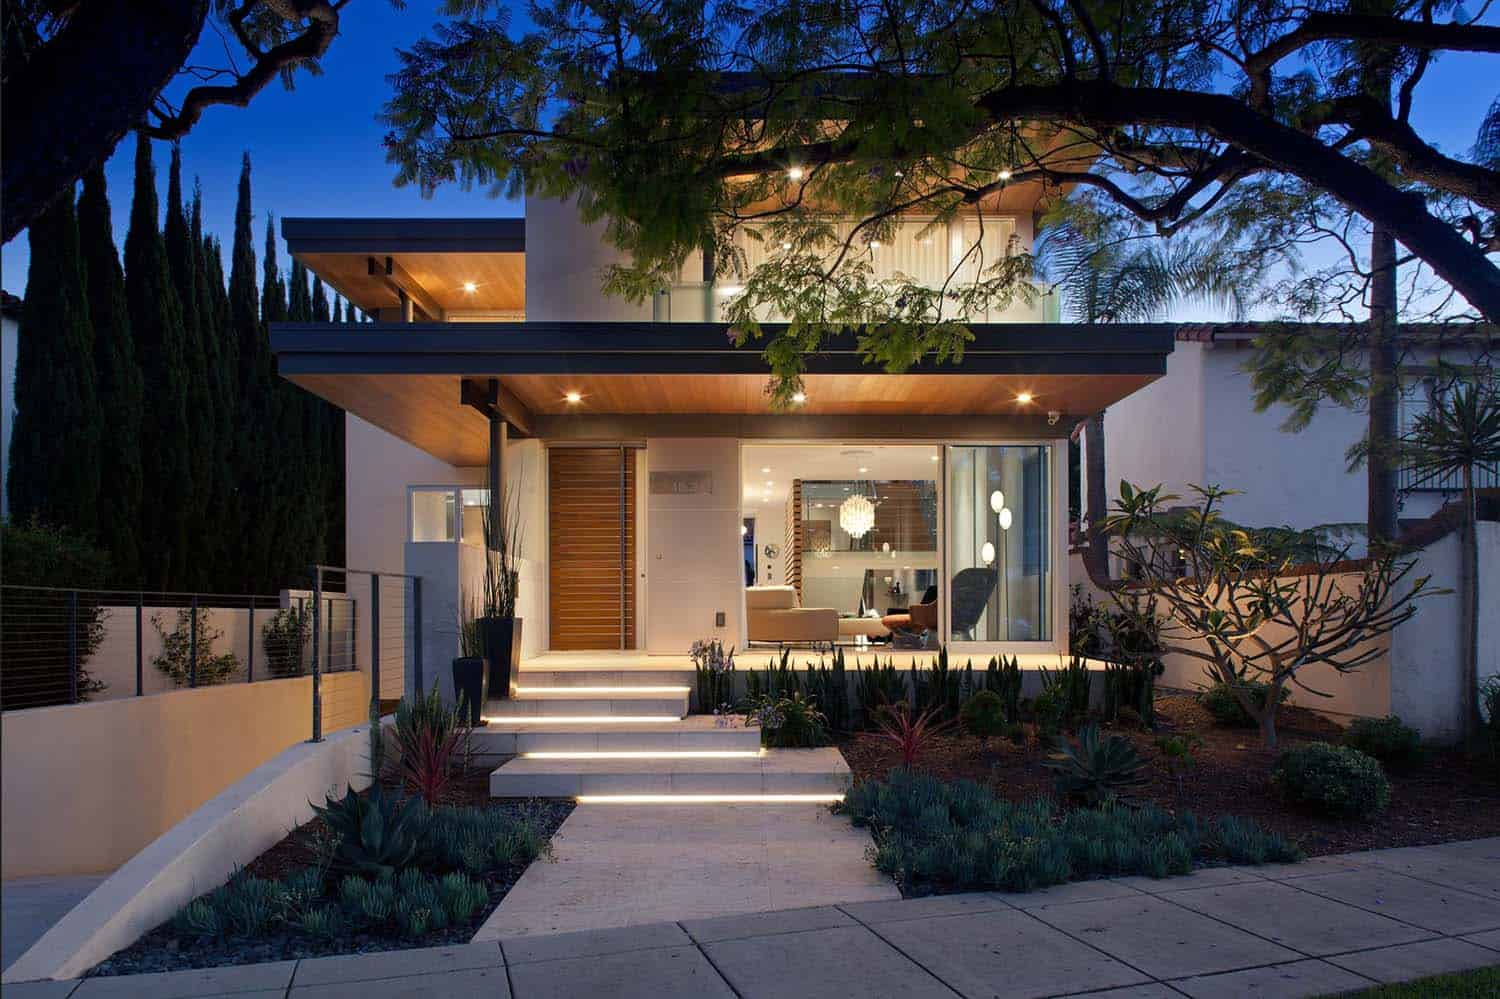 Southern california home features an elegant contemporary - Casas japonesas modernas ...